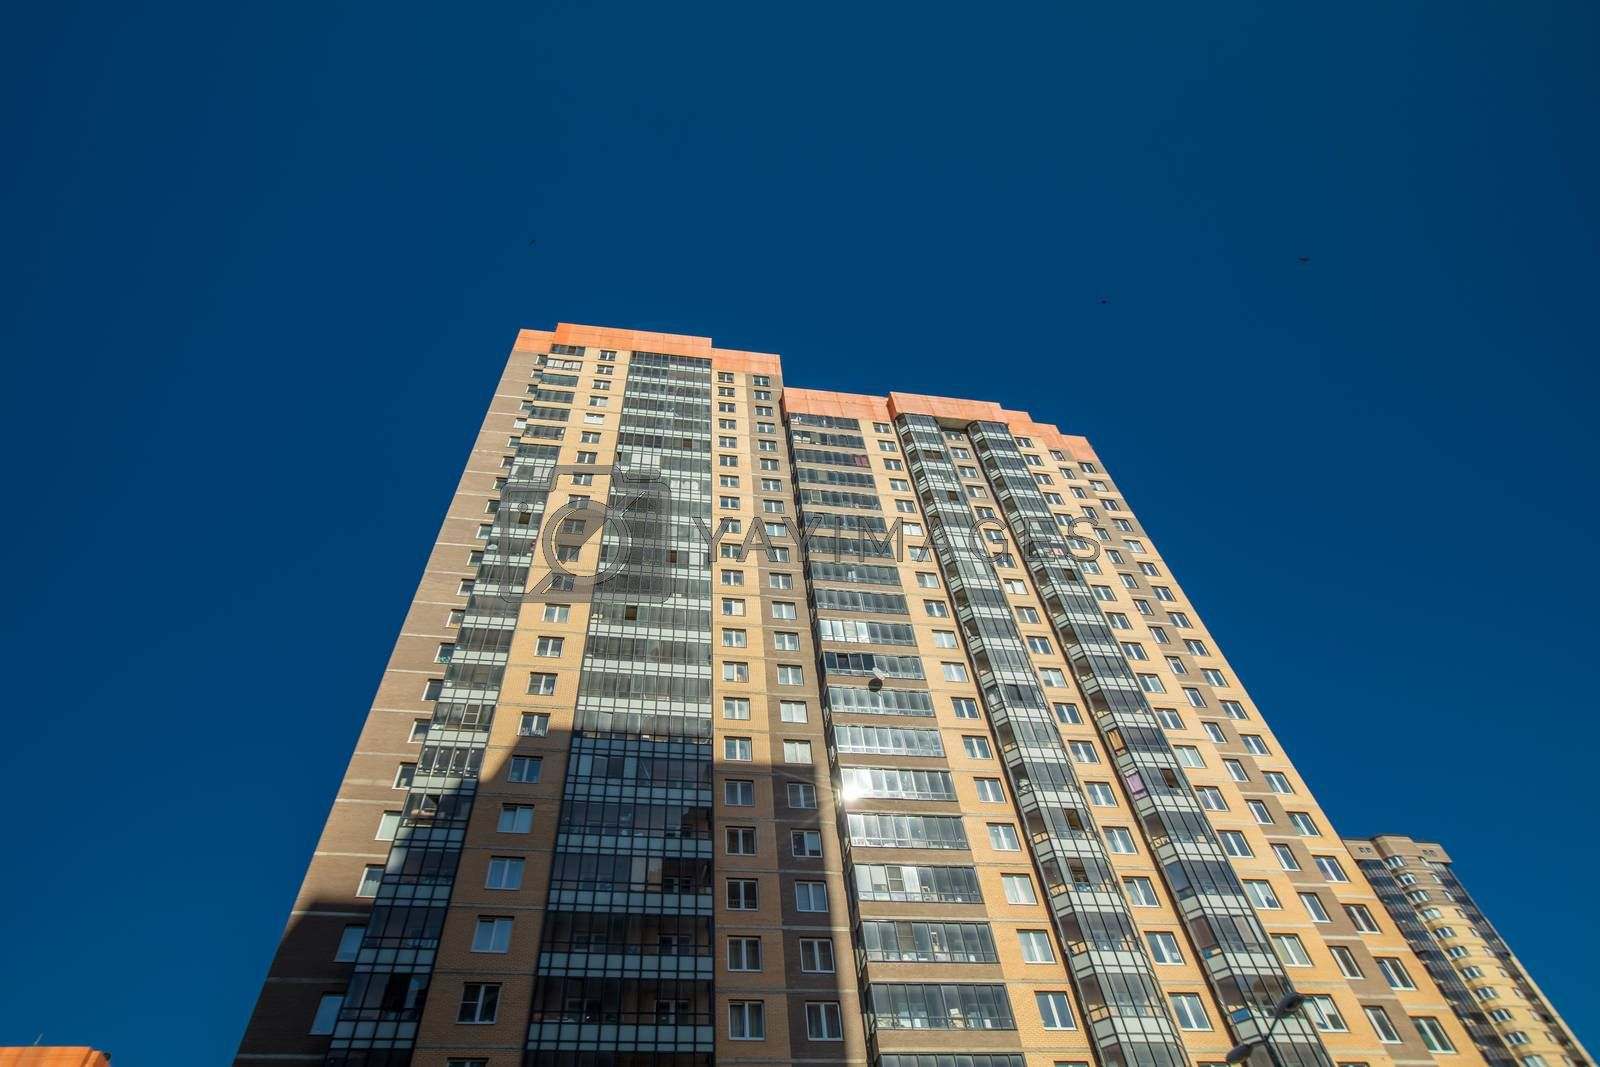 Modern building exterior low angle view with blue sky